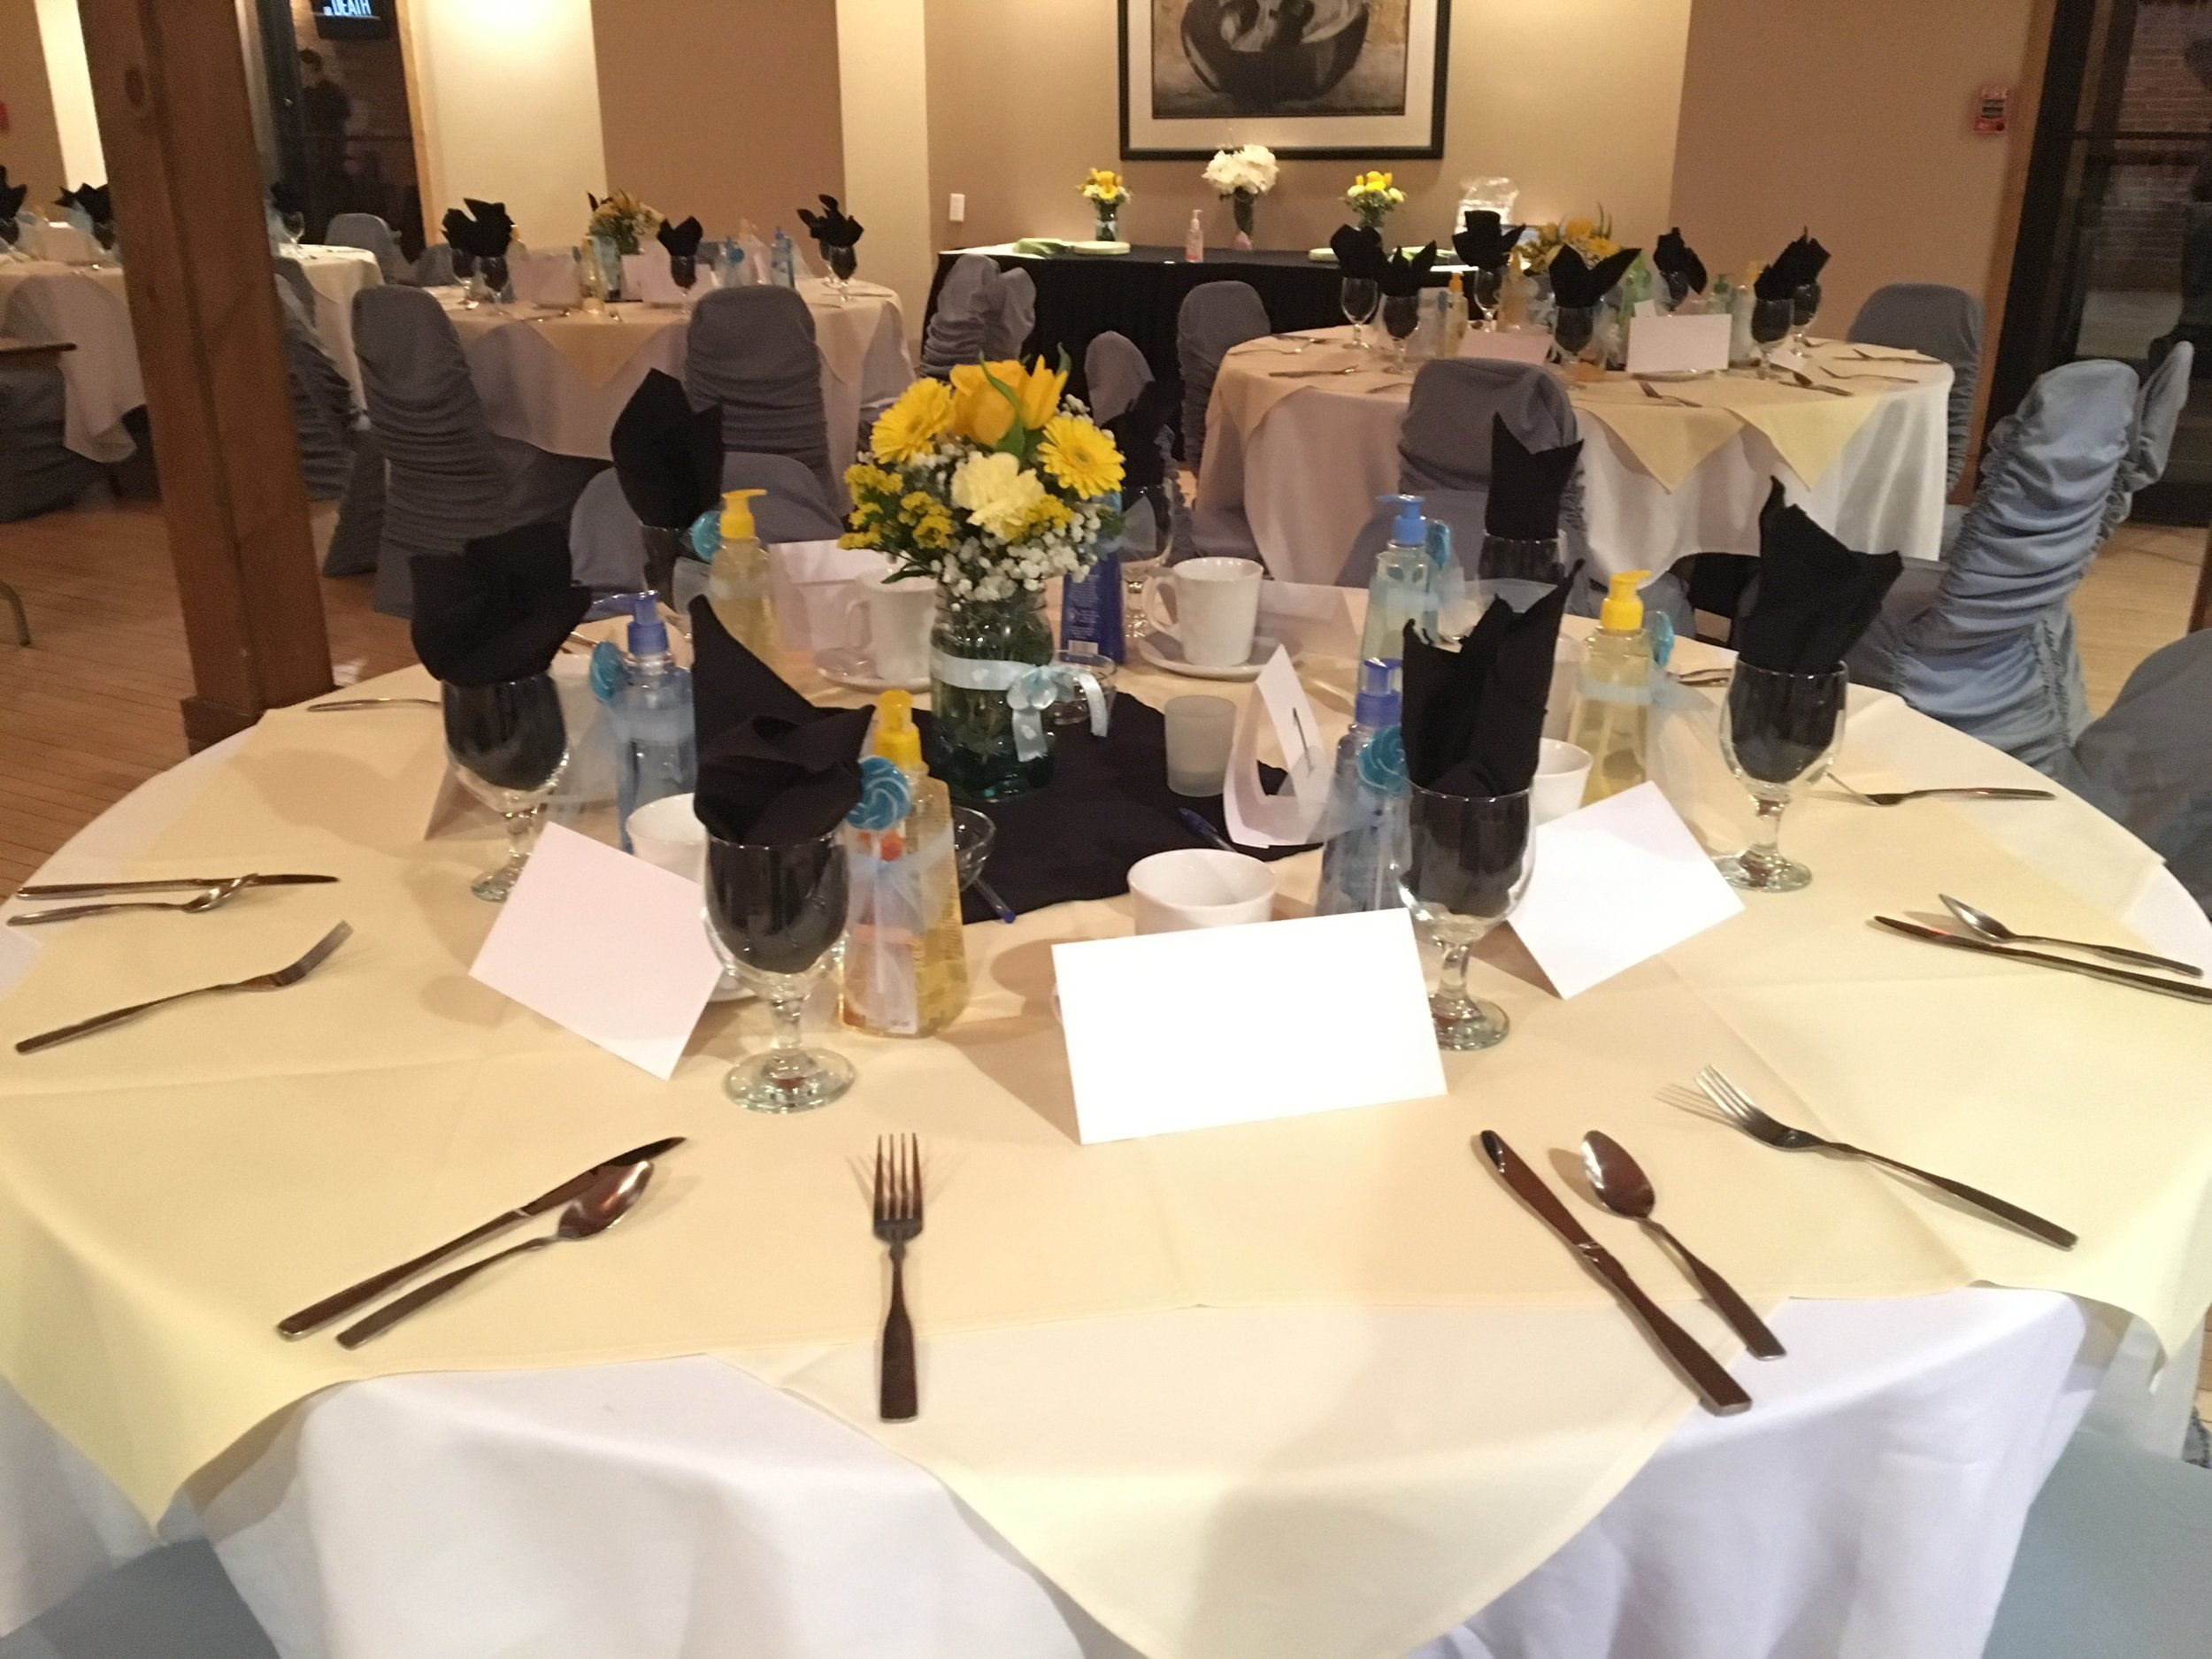 banquet room setup with chair covers 2.JPG